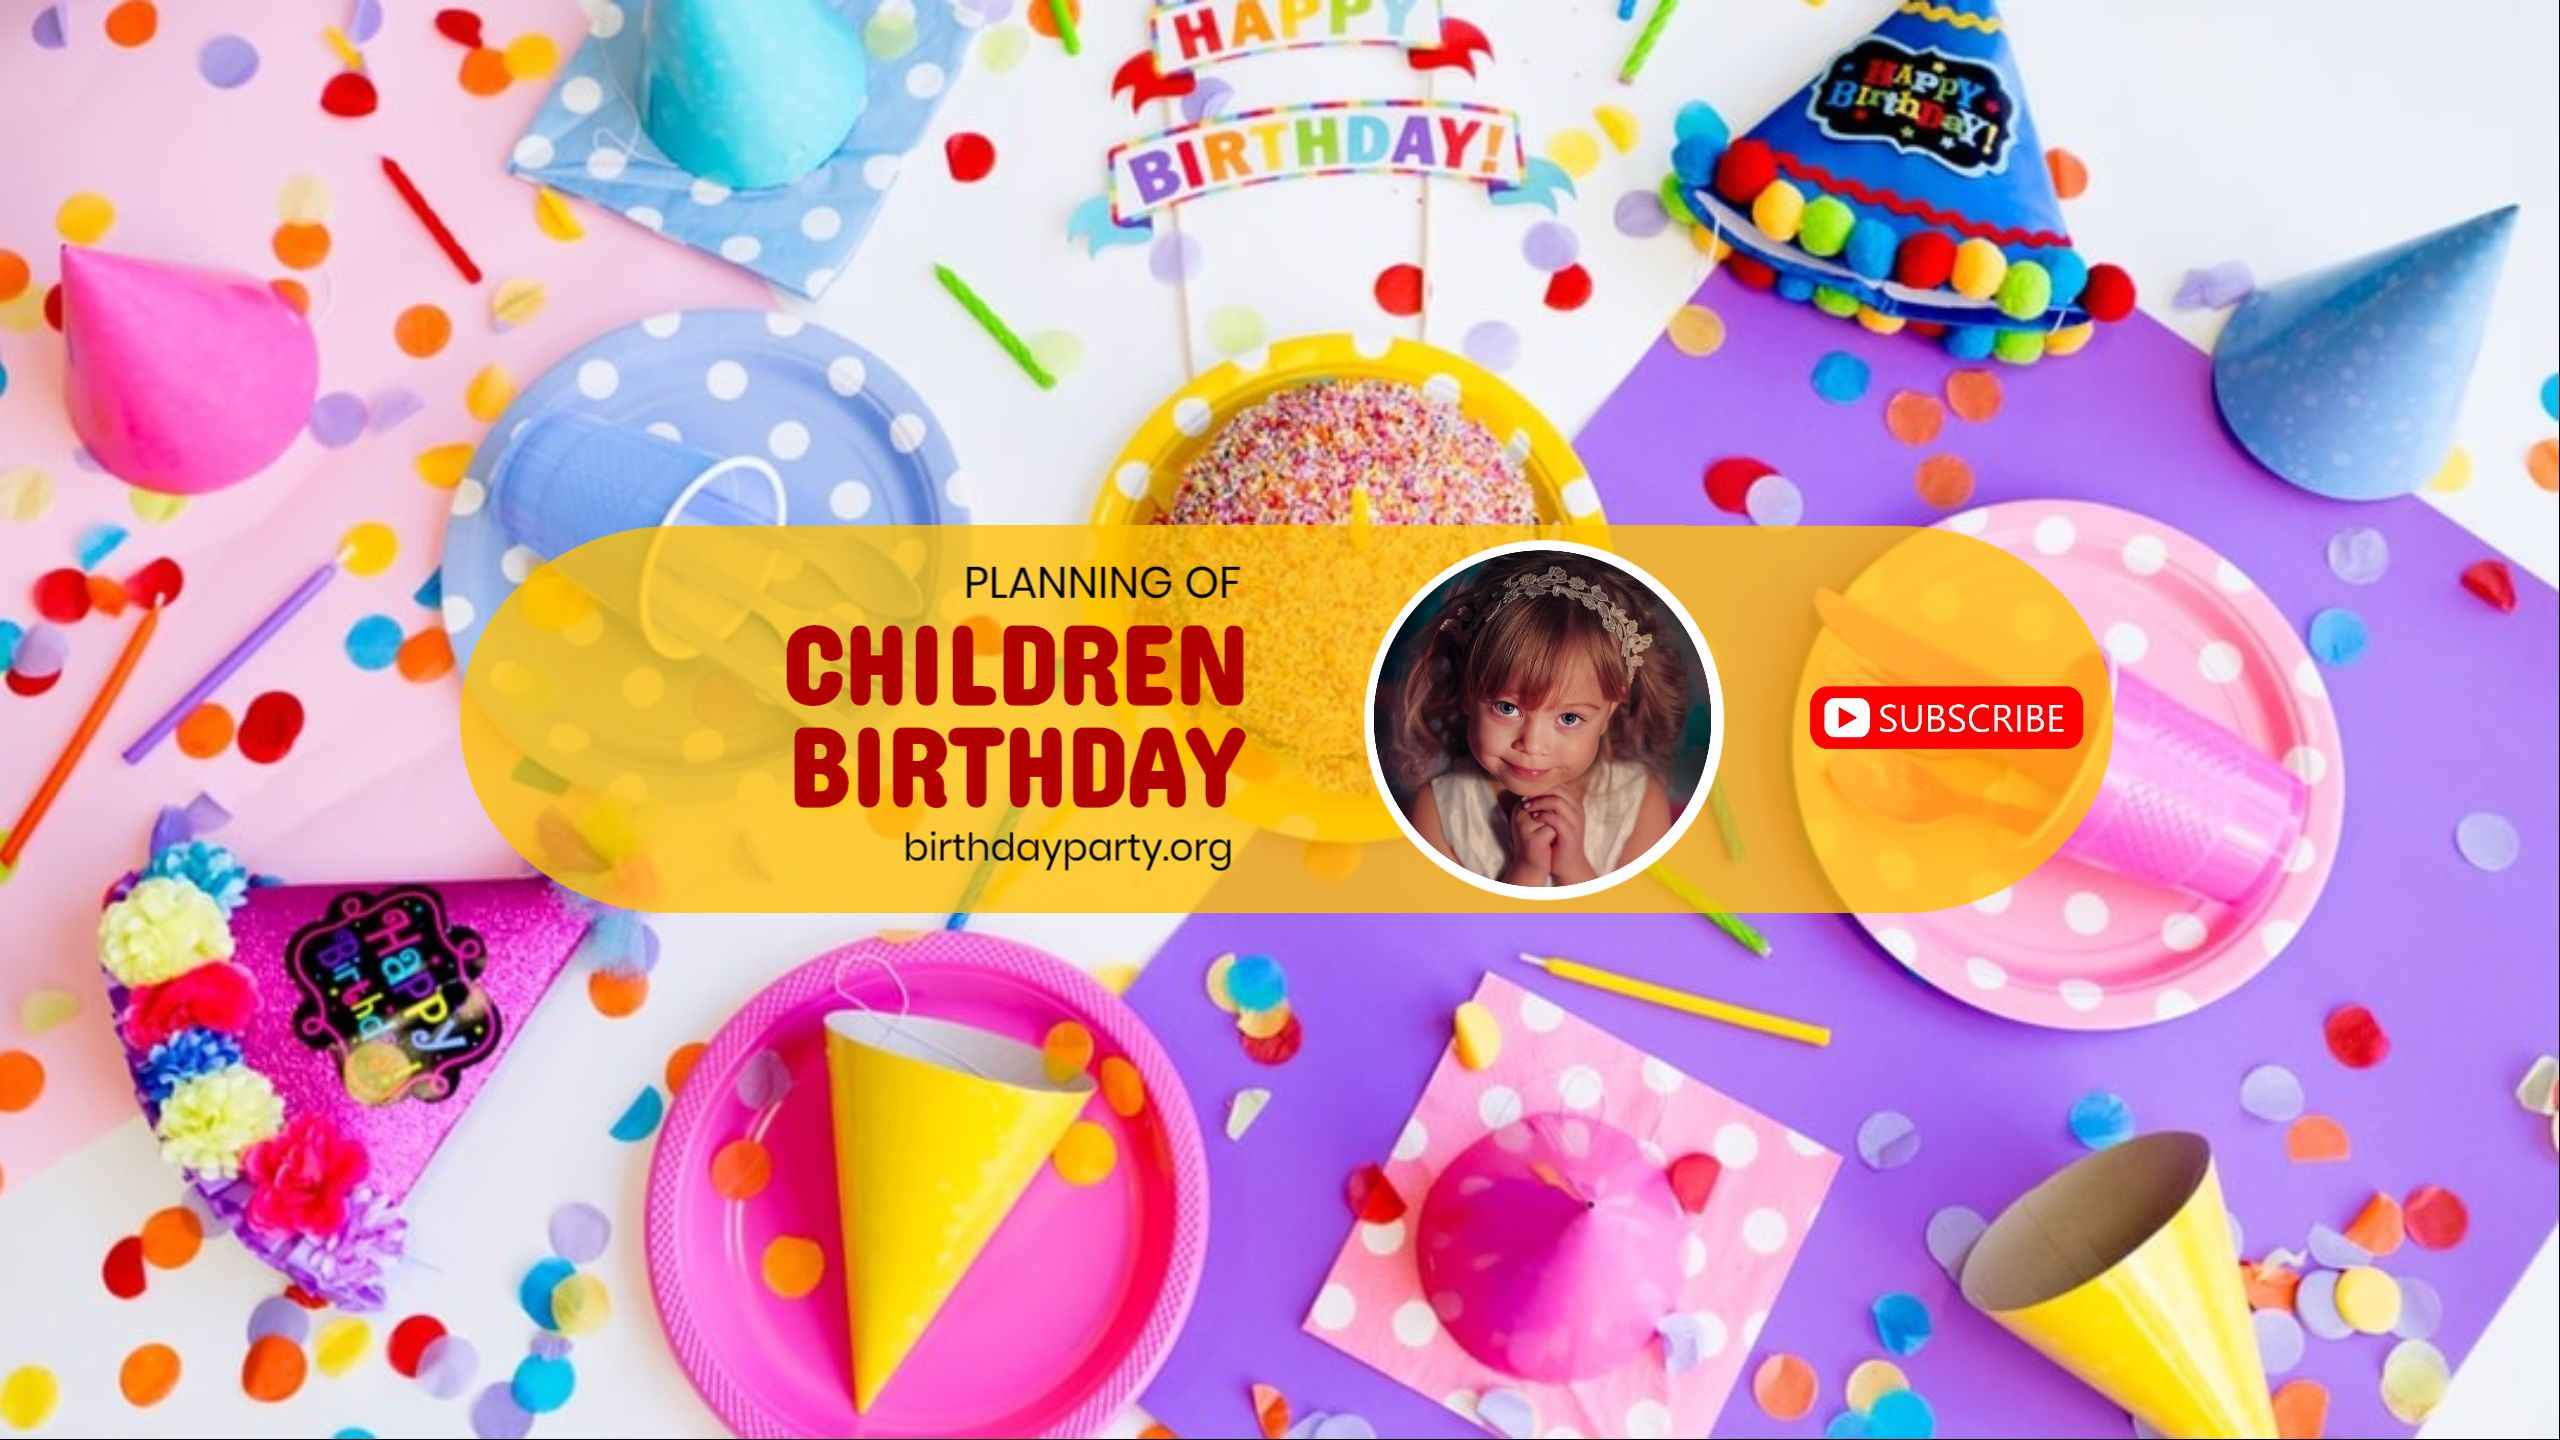 Birthday Party Planning Youtube Channel Art